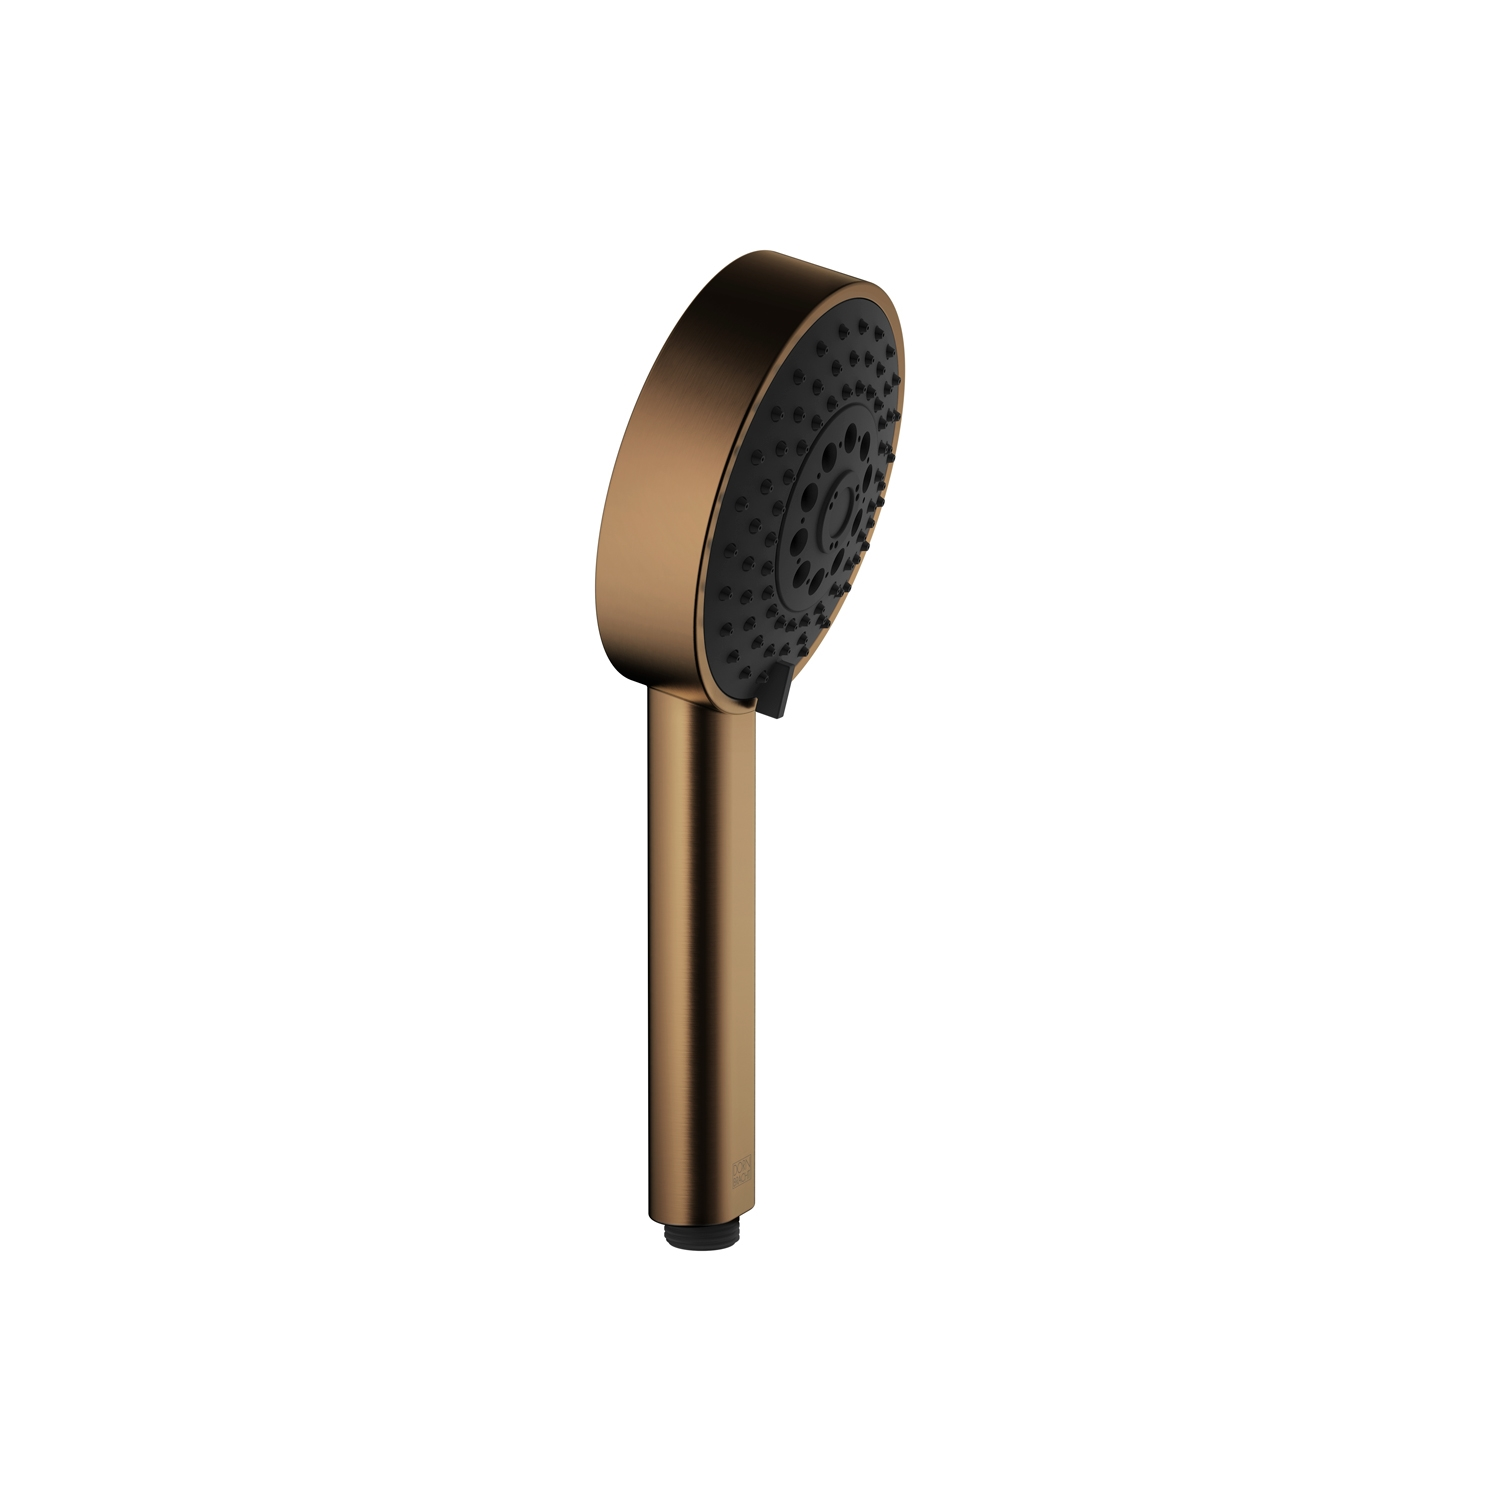 Dornbracht 28011979-160010 Generic Hand Shower - Dark Brass Matte